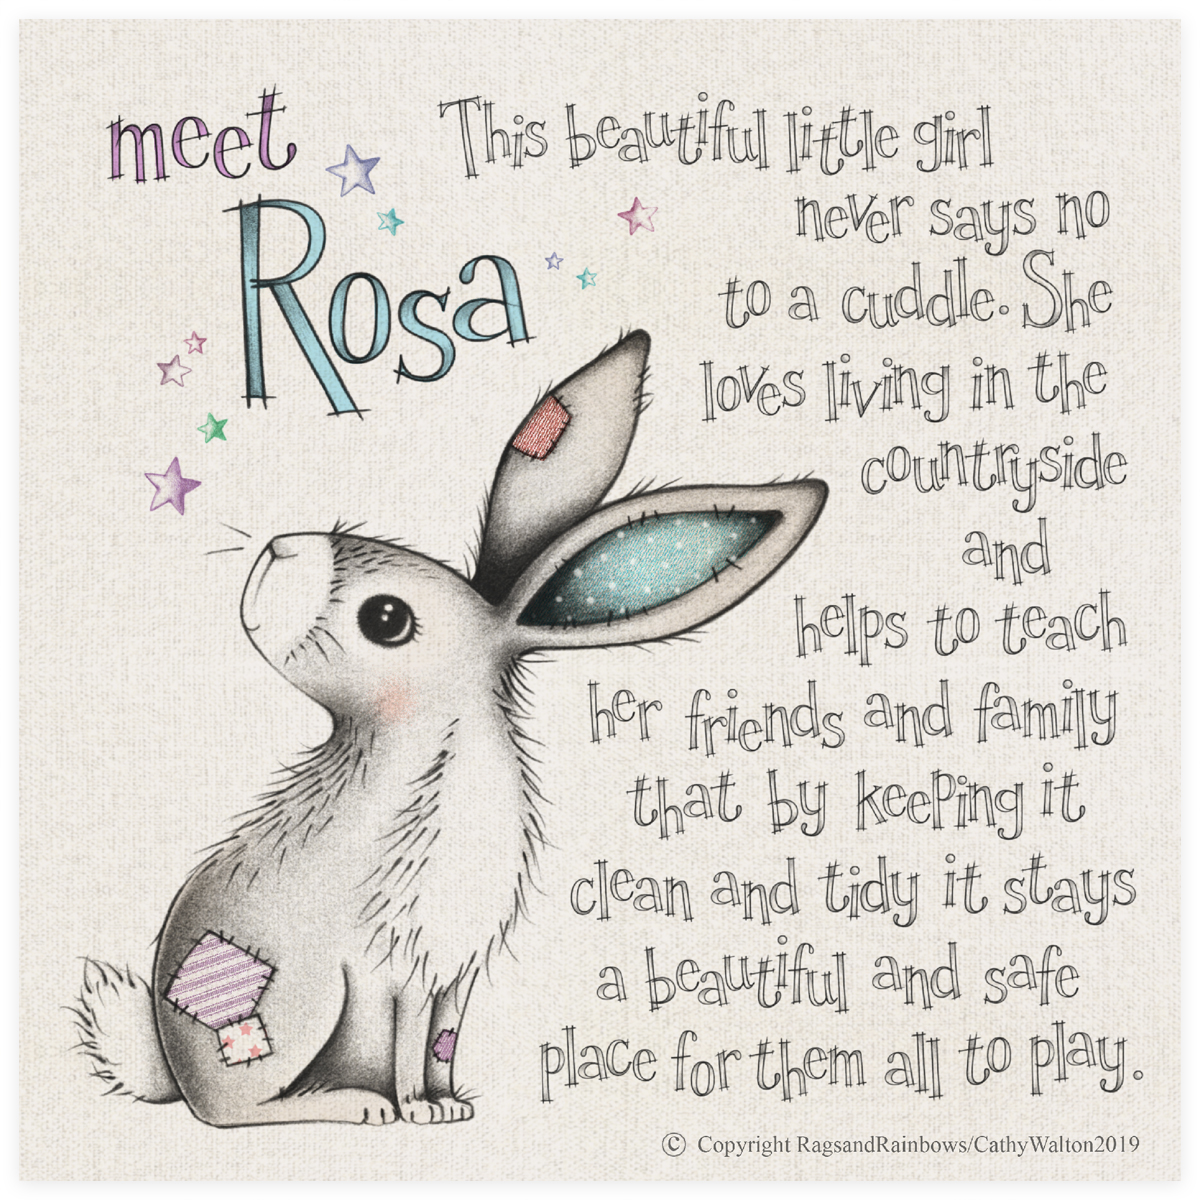 Rosa the Rabbit